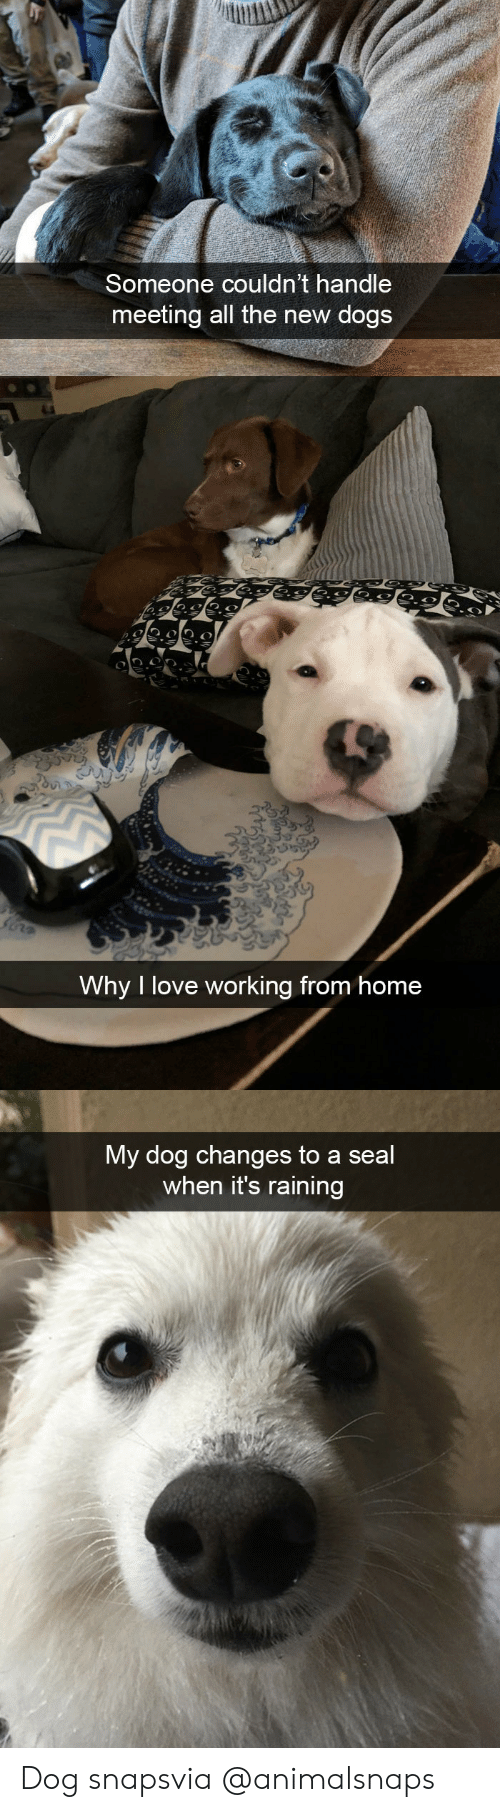 Dogs, Love, and Target: Someone couldn't handle  meeting all the new dogs   Why I love working from home   My dog changes to a seal  when it's raining Dog snapsvia @animalsnaps